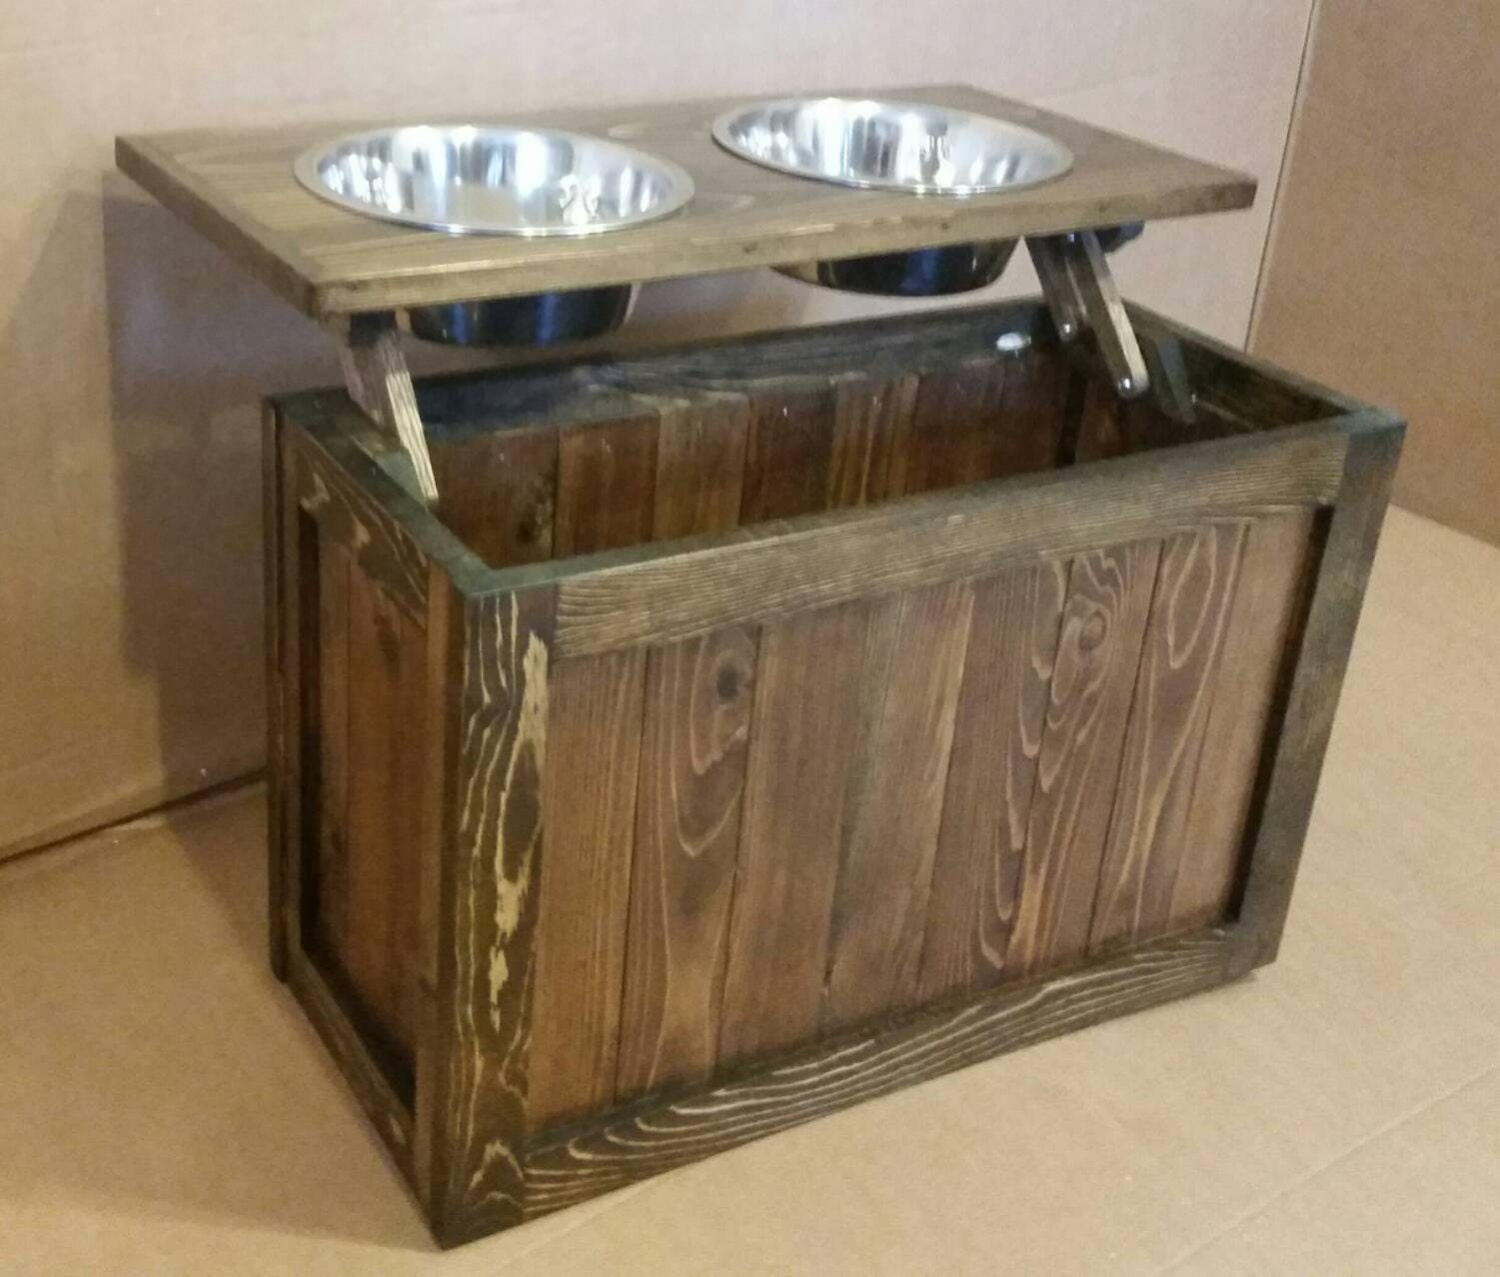 diy dog cat by elevated feeder feeding village bowl station chairs thediyvillage com projects the